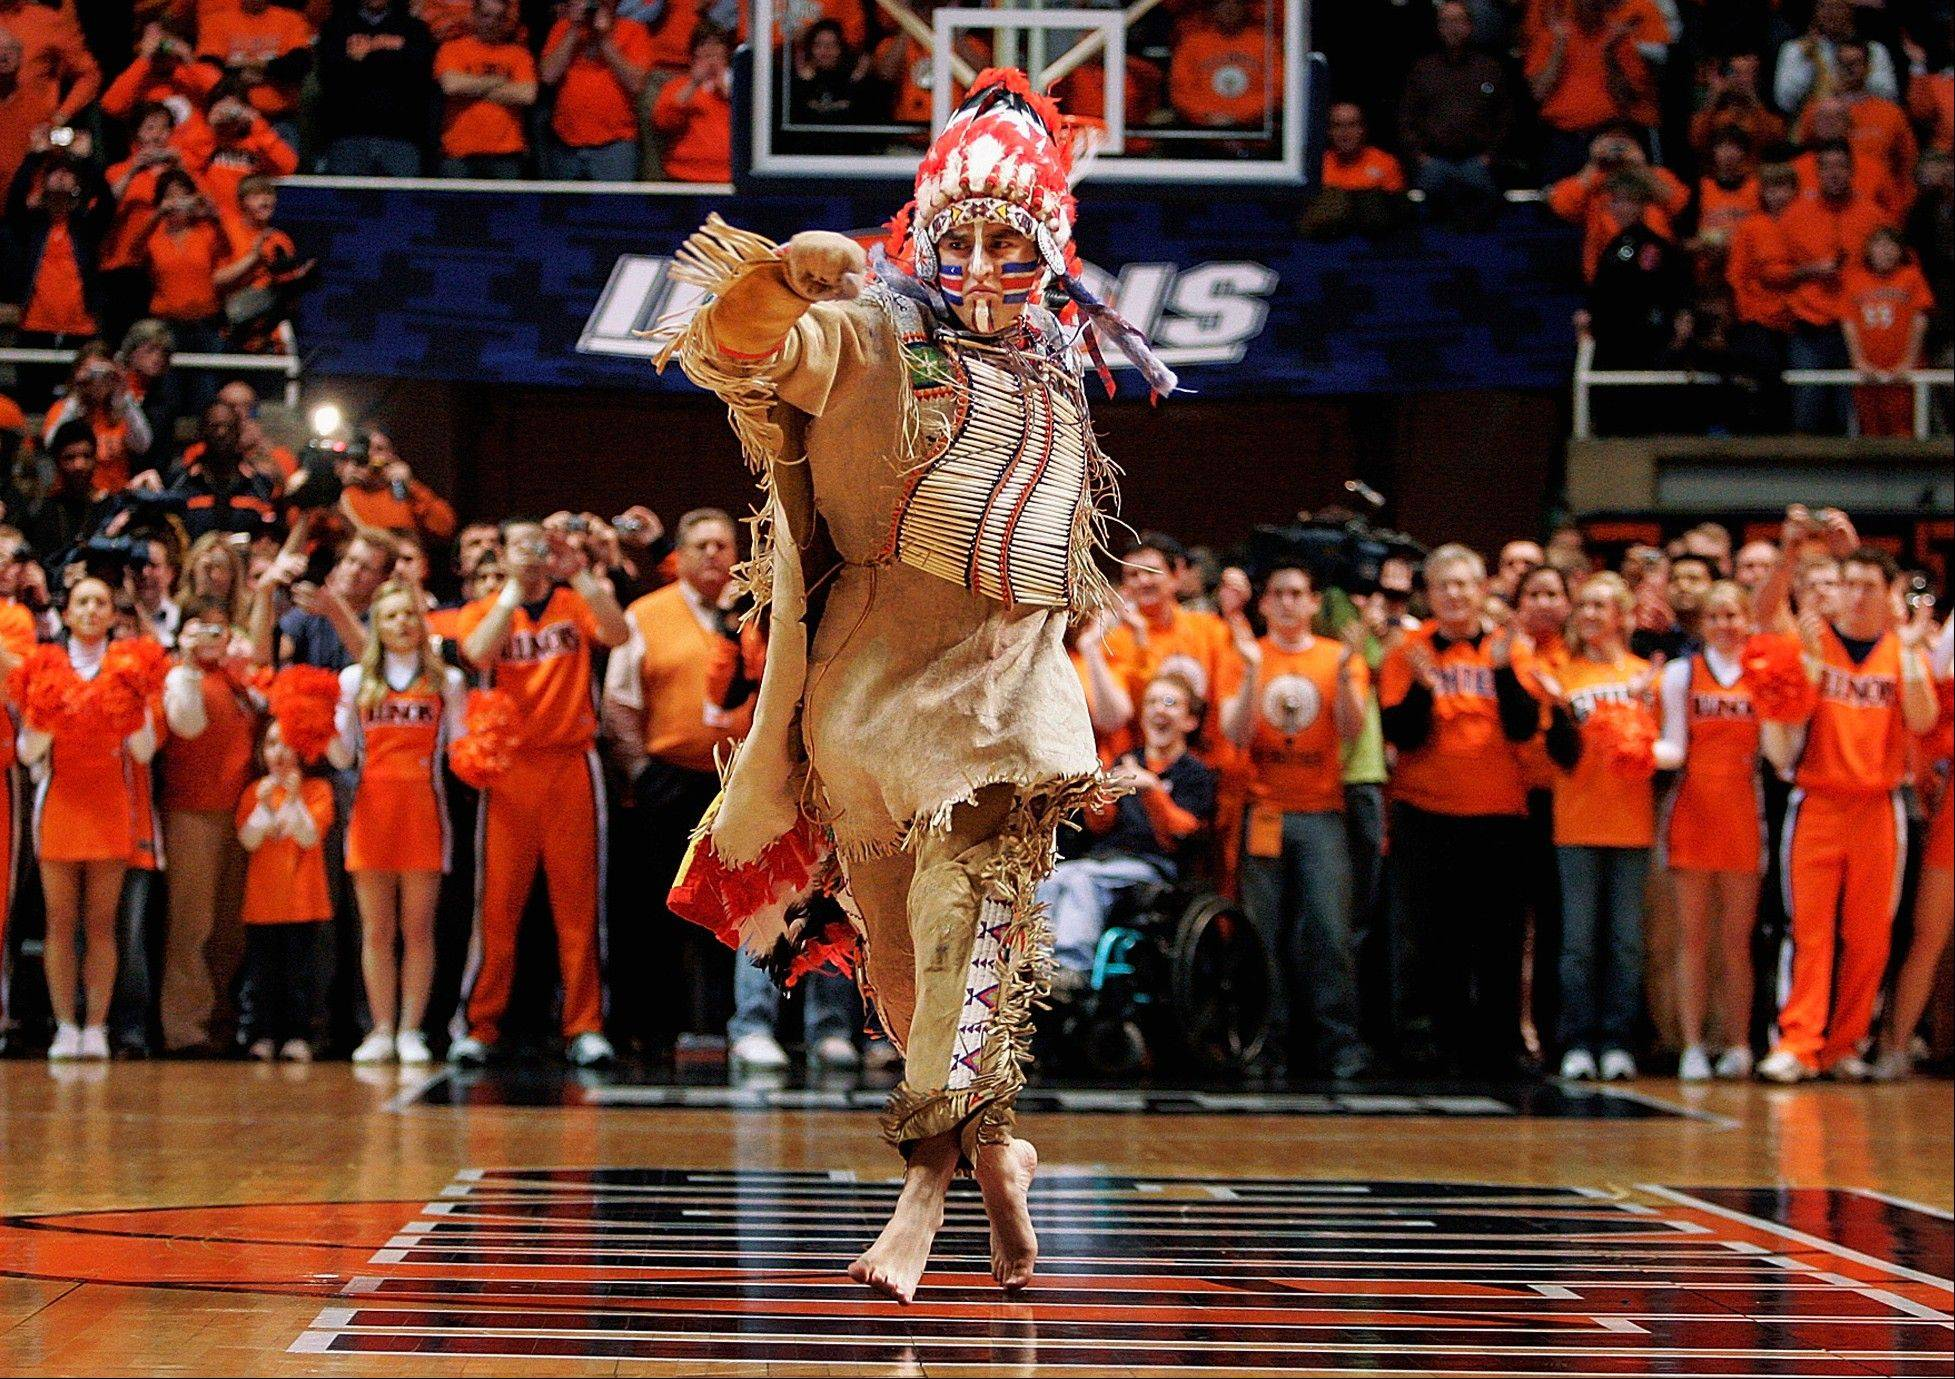 Chief Illiniwek performs for the last time during an Illinois basketball game in Champaign in 2007.